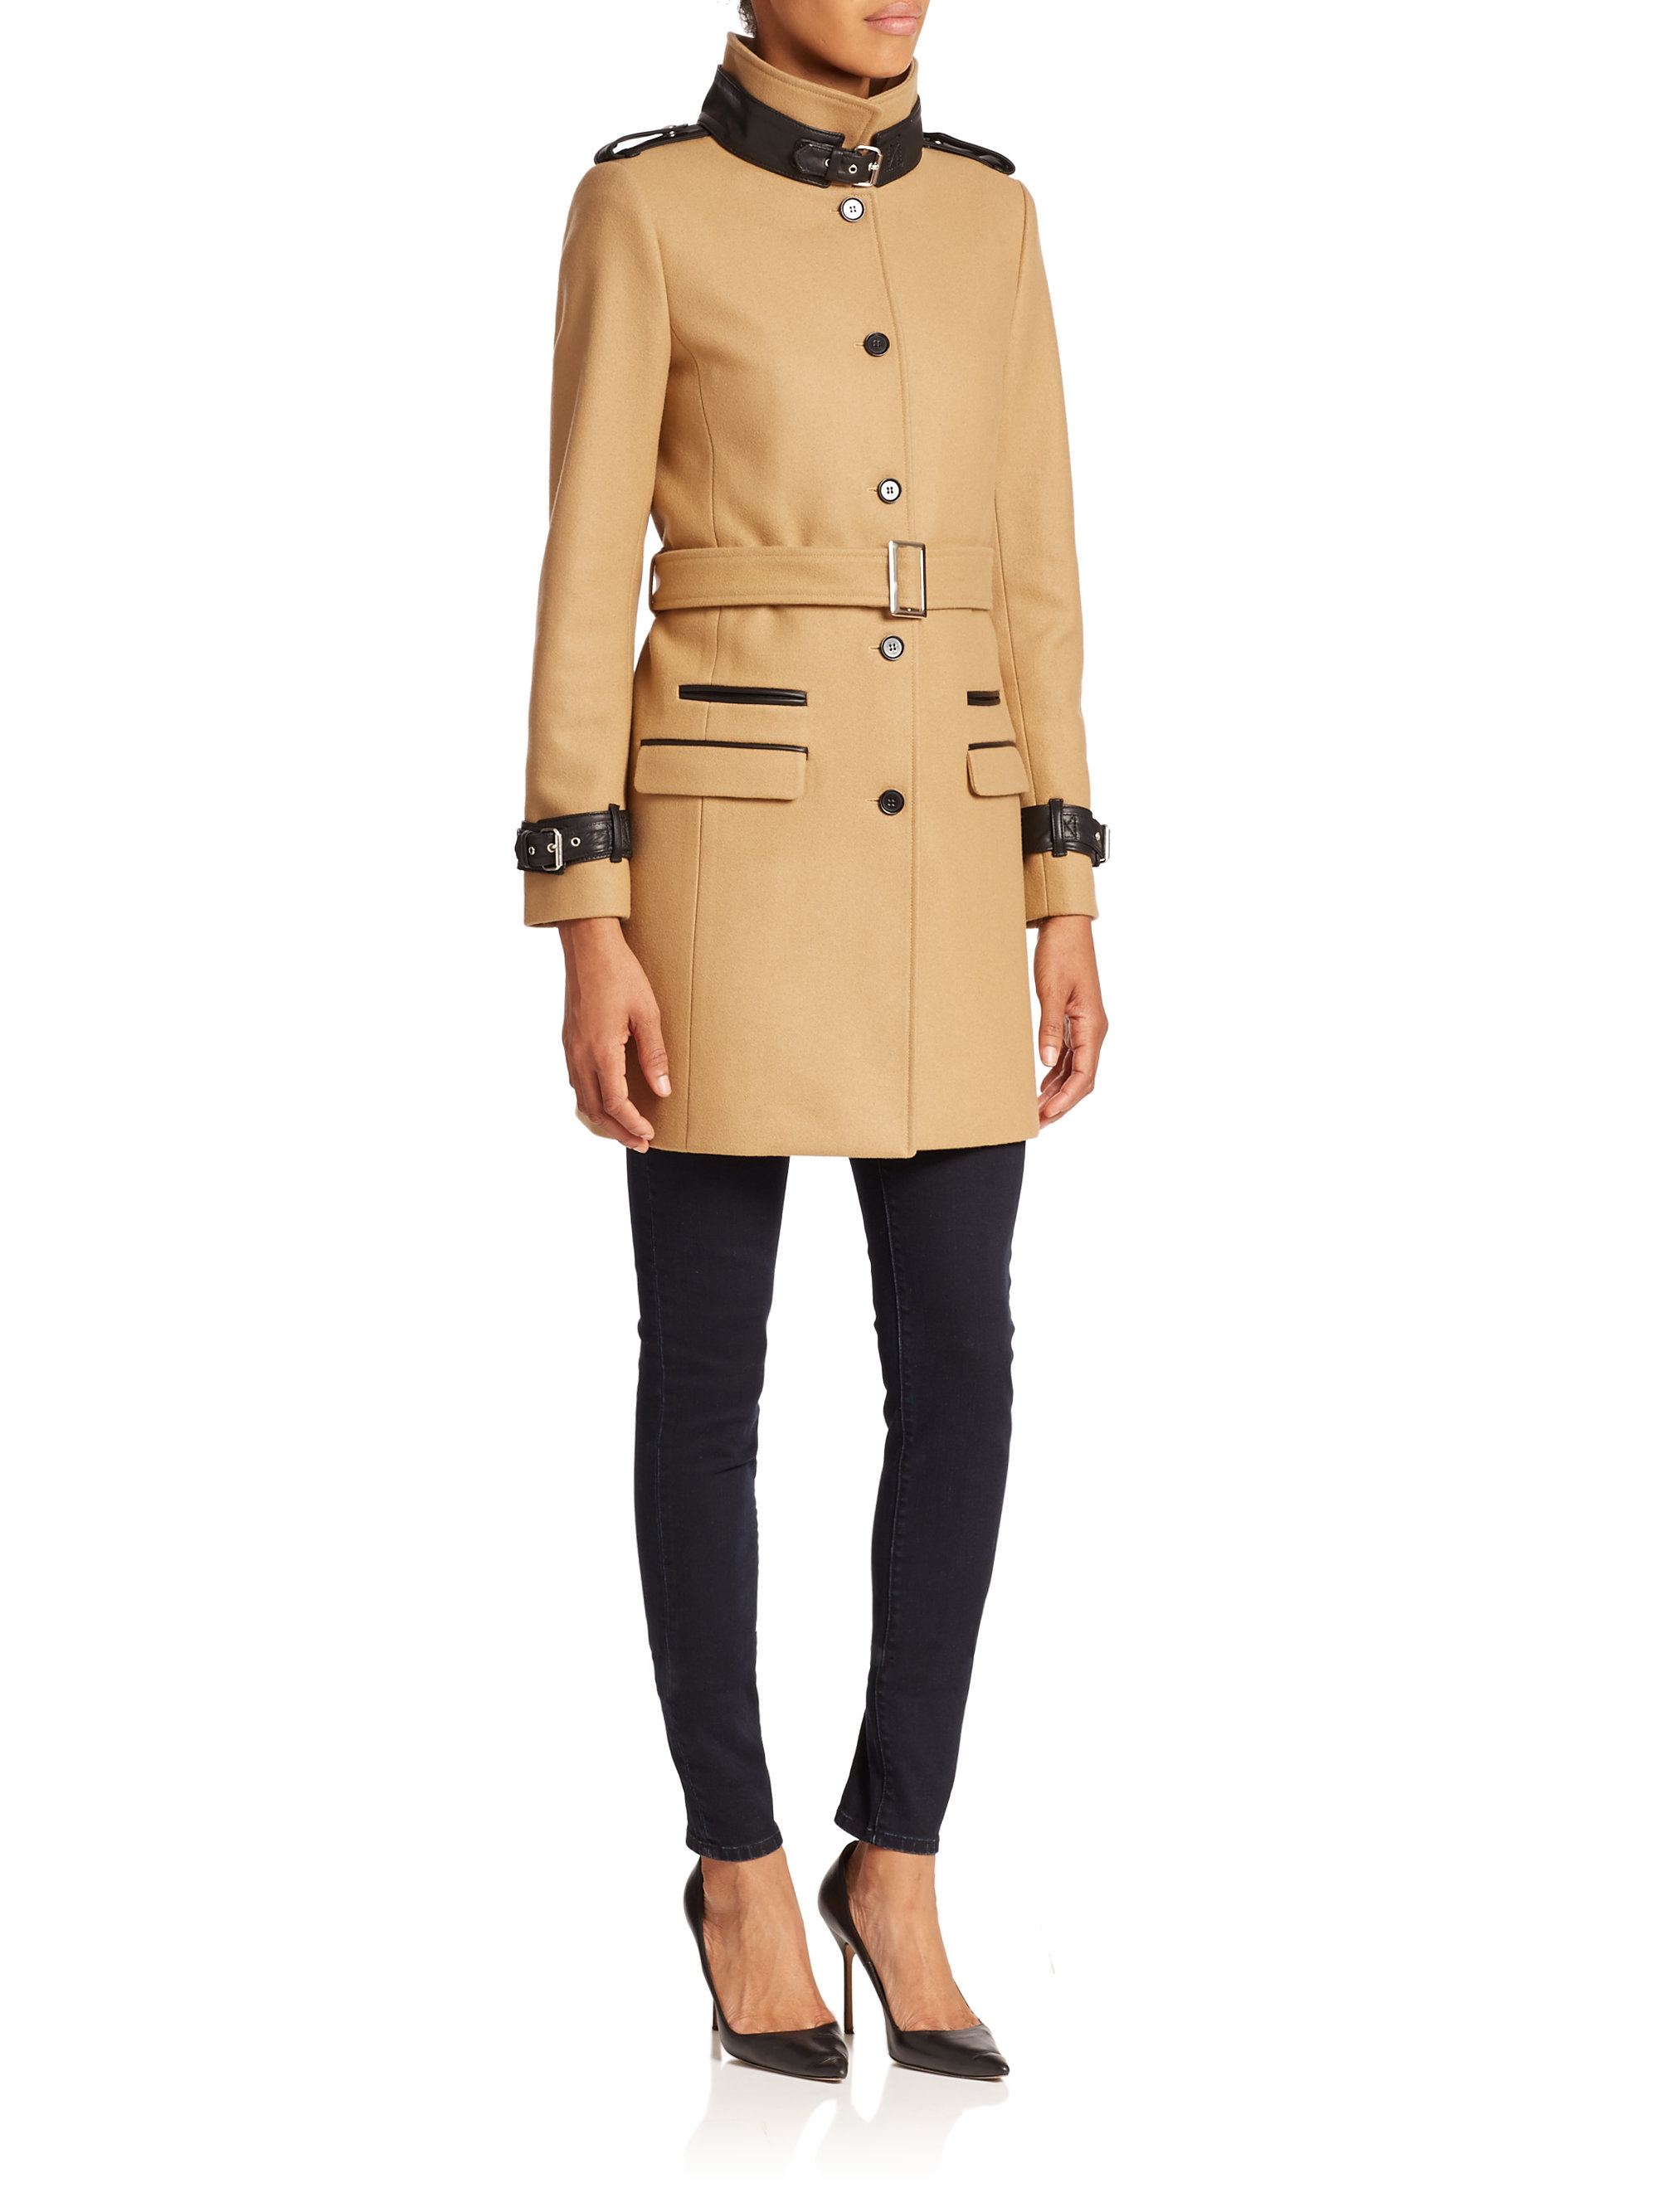 8f7a0604b92 The Kooples Leather-detailed Stretch Coat in Natural - Lyst